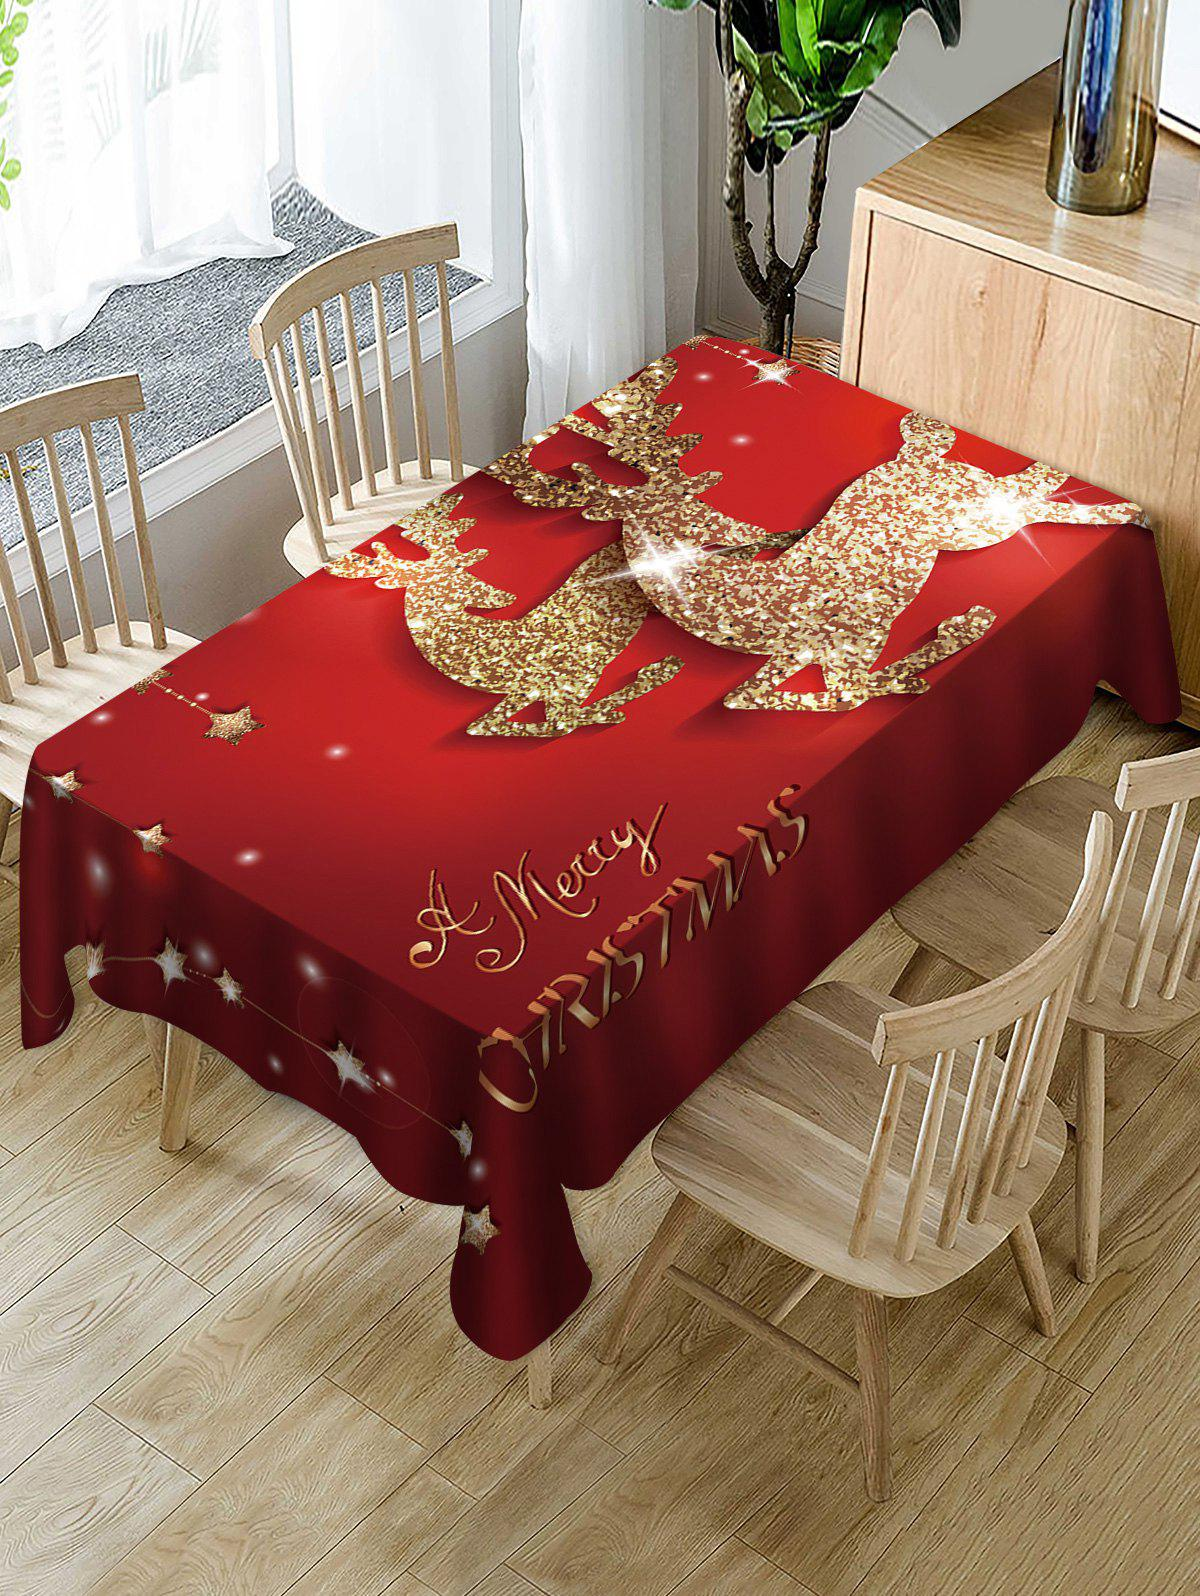 Trendy Merry Christmas Deer Print Fabric Waterproof Table Cloth